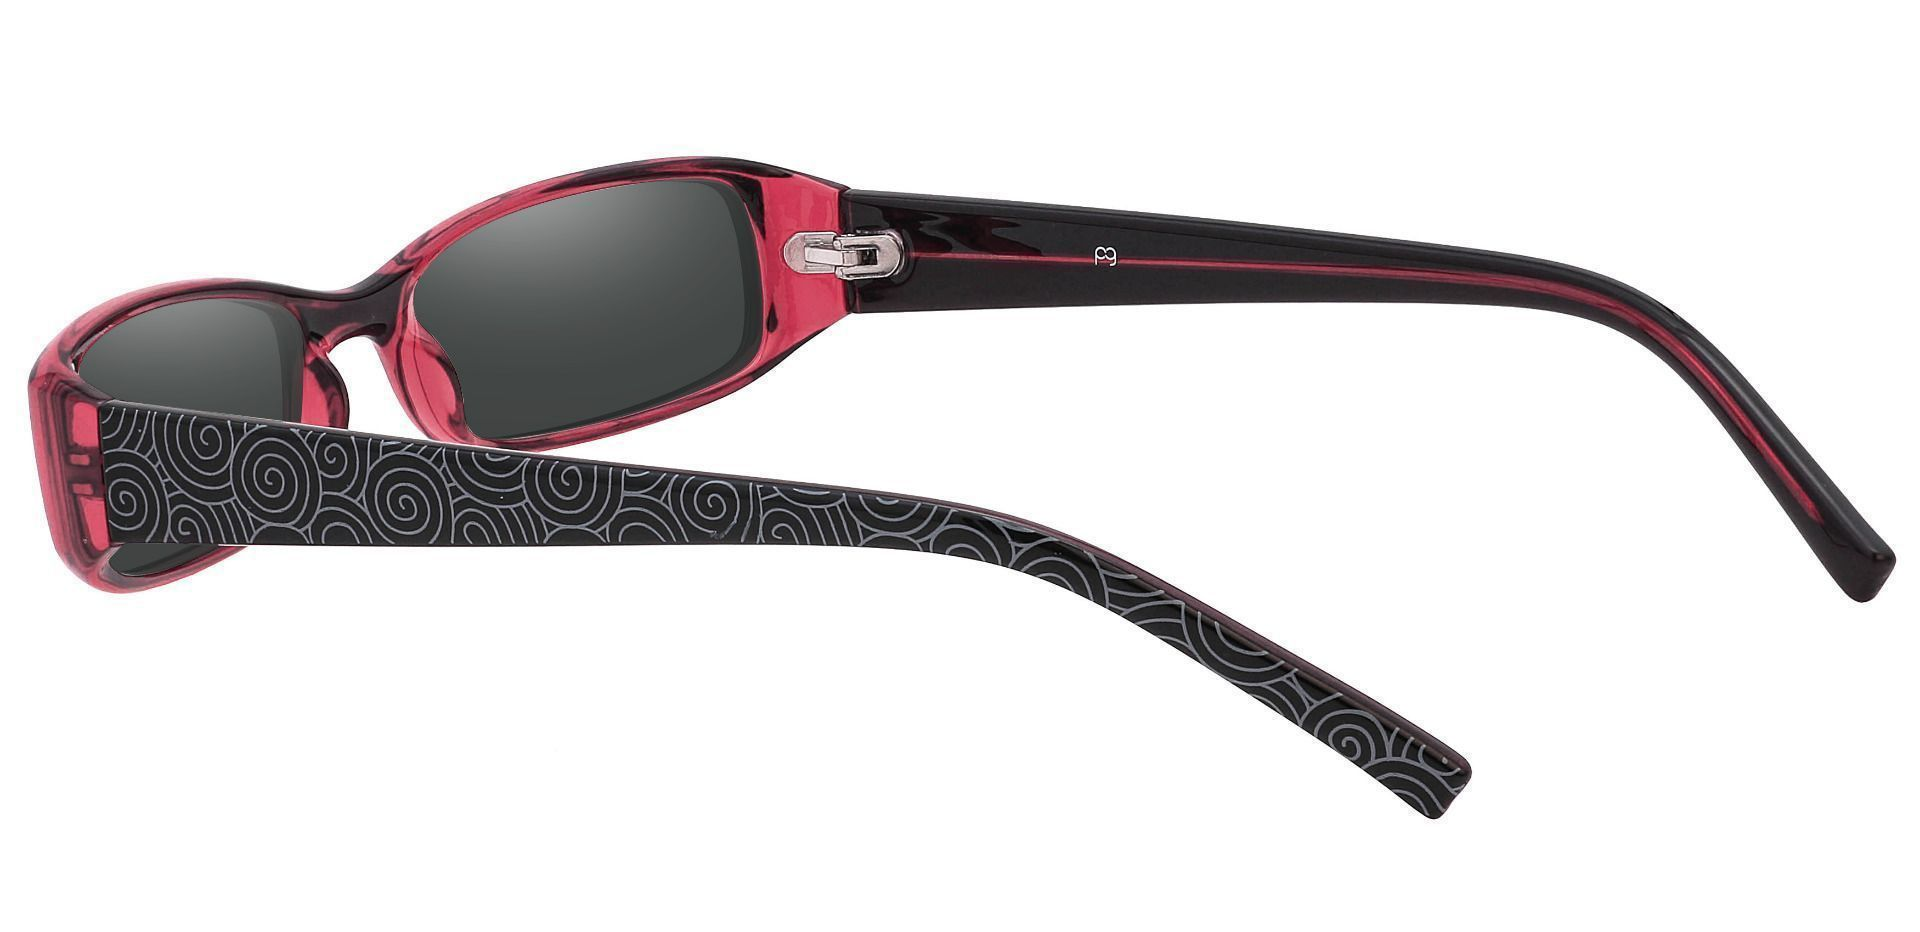 Veronica Rectangle Single Vision Sunglasses - Red Frame With Gray Lenses